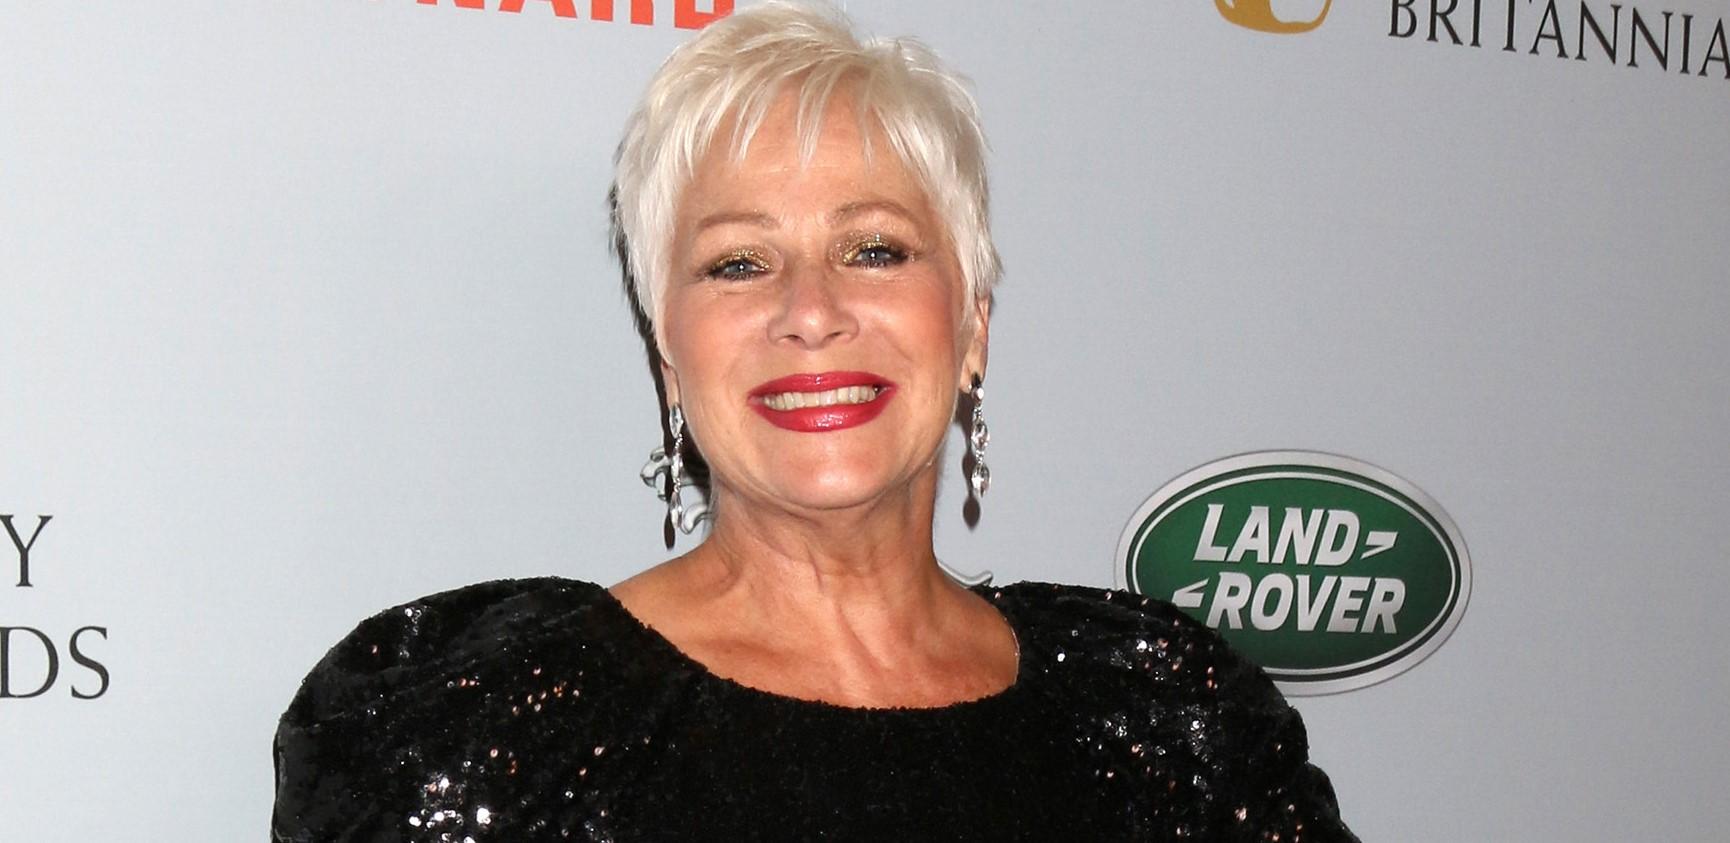 Denise Welch quits NTAs early after Loose Women defeat